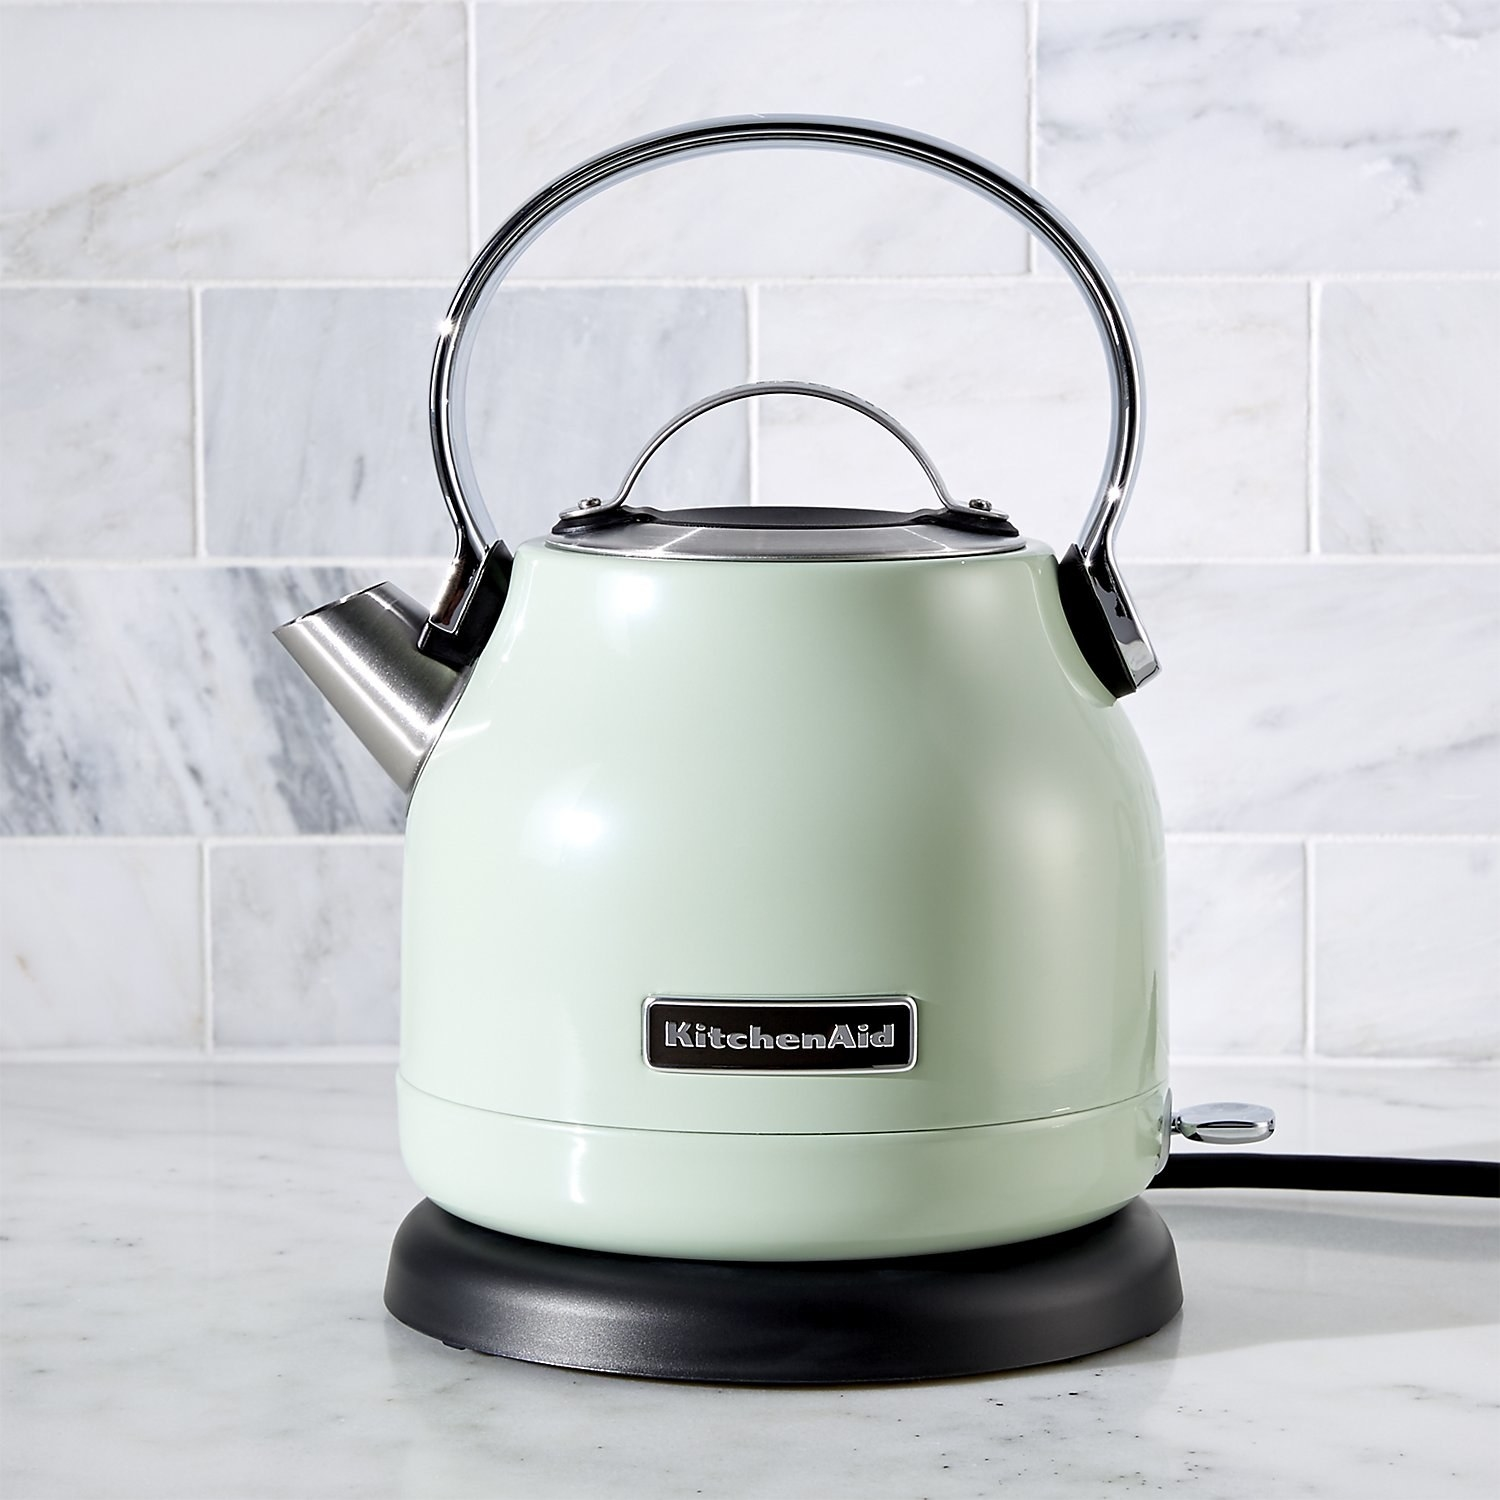 The kettle sitting on a counter